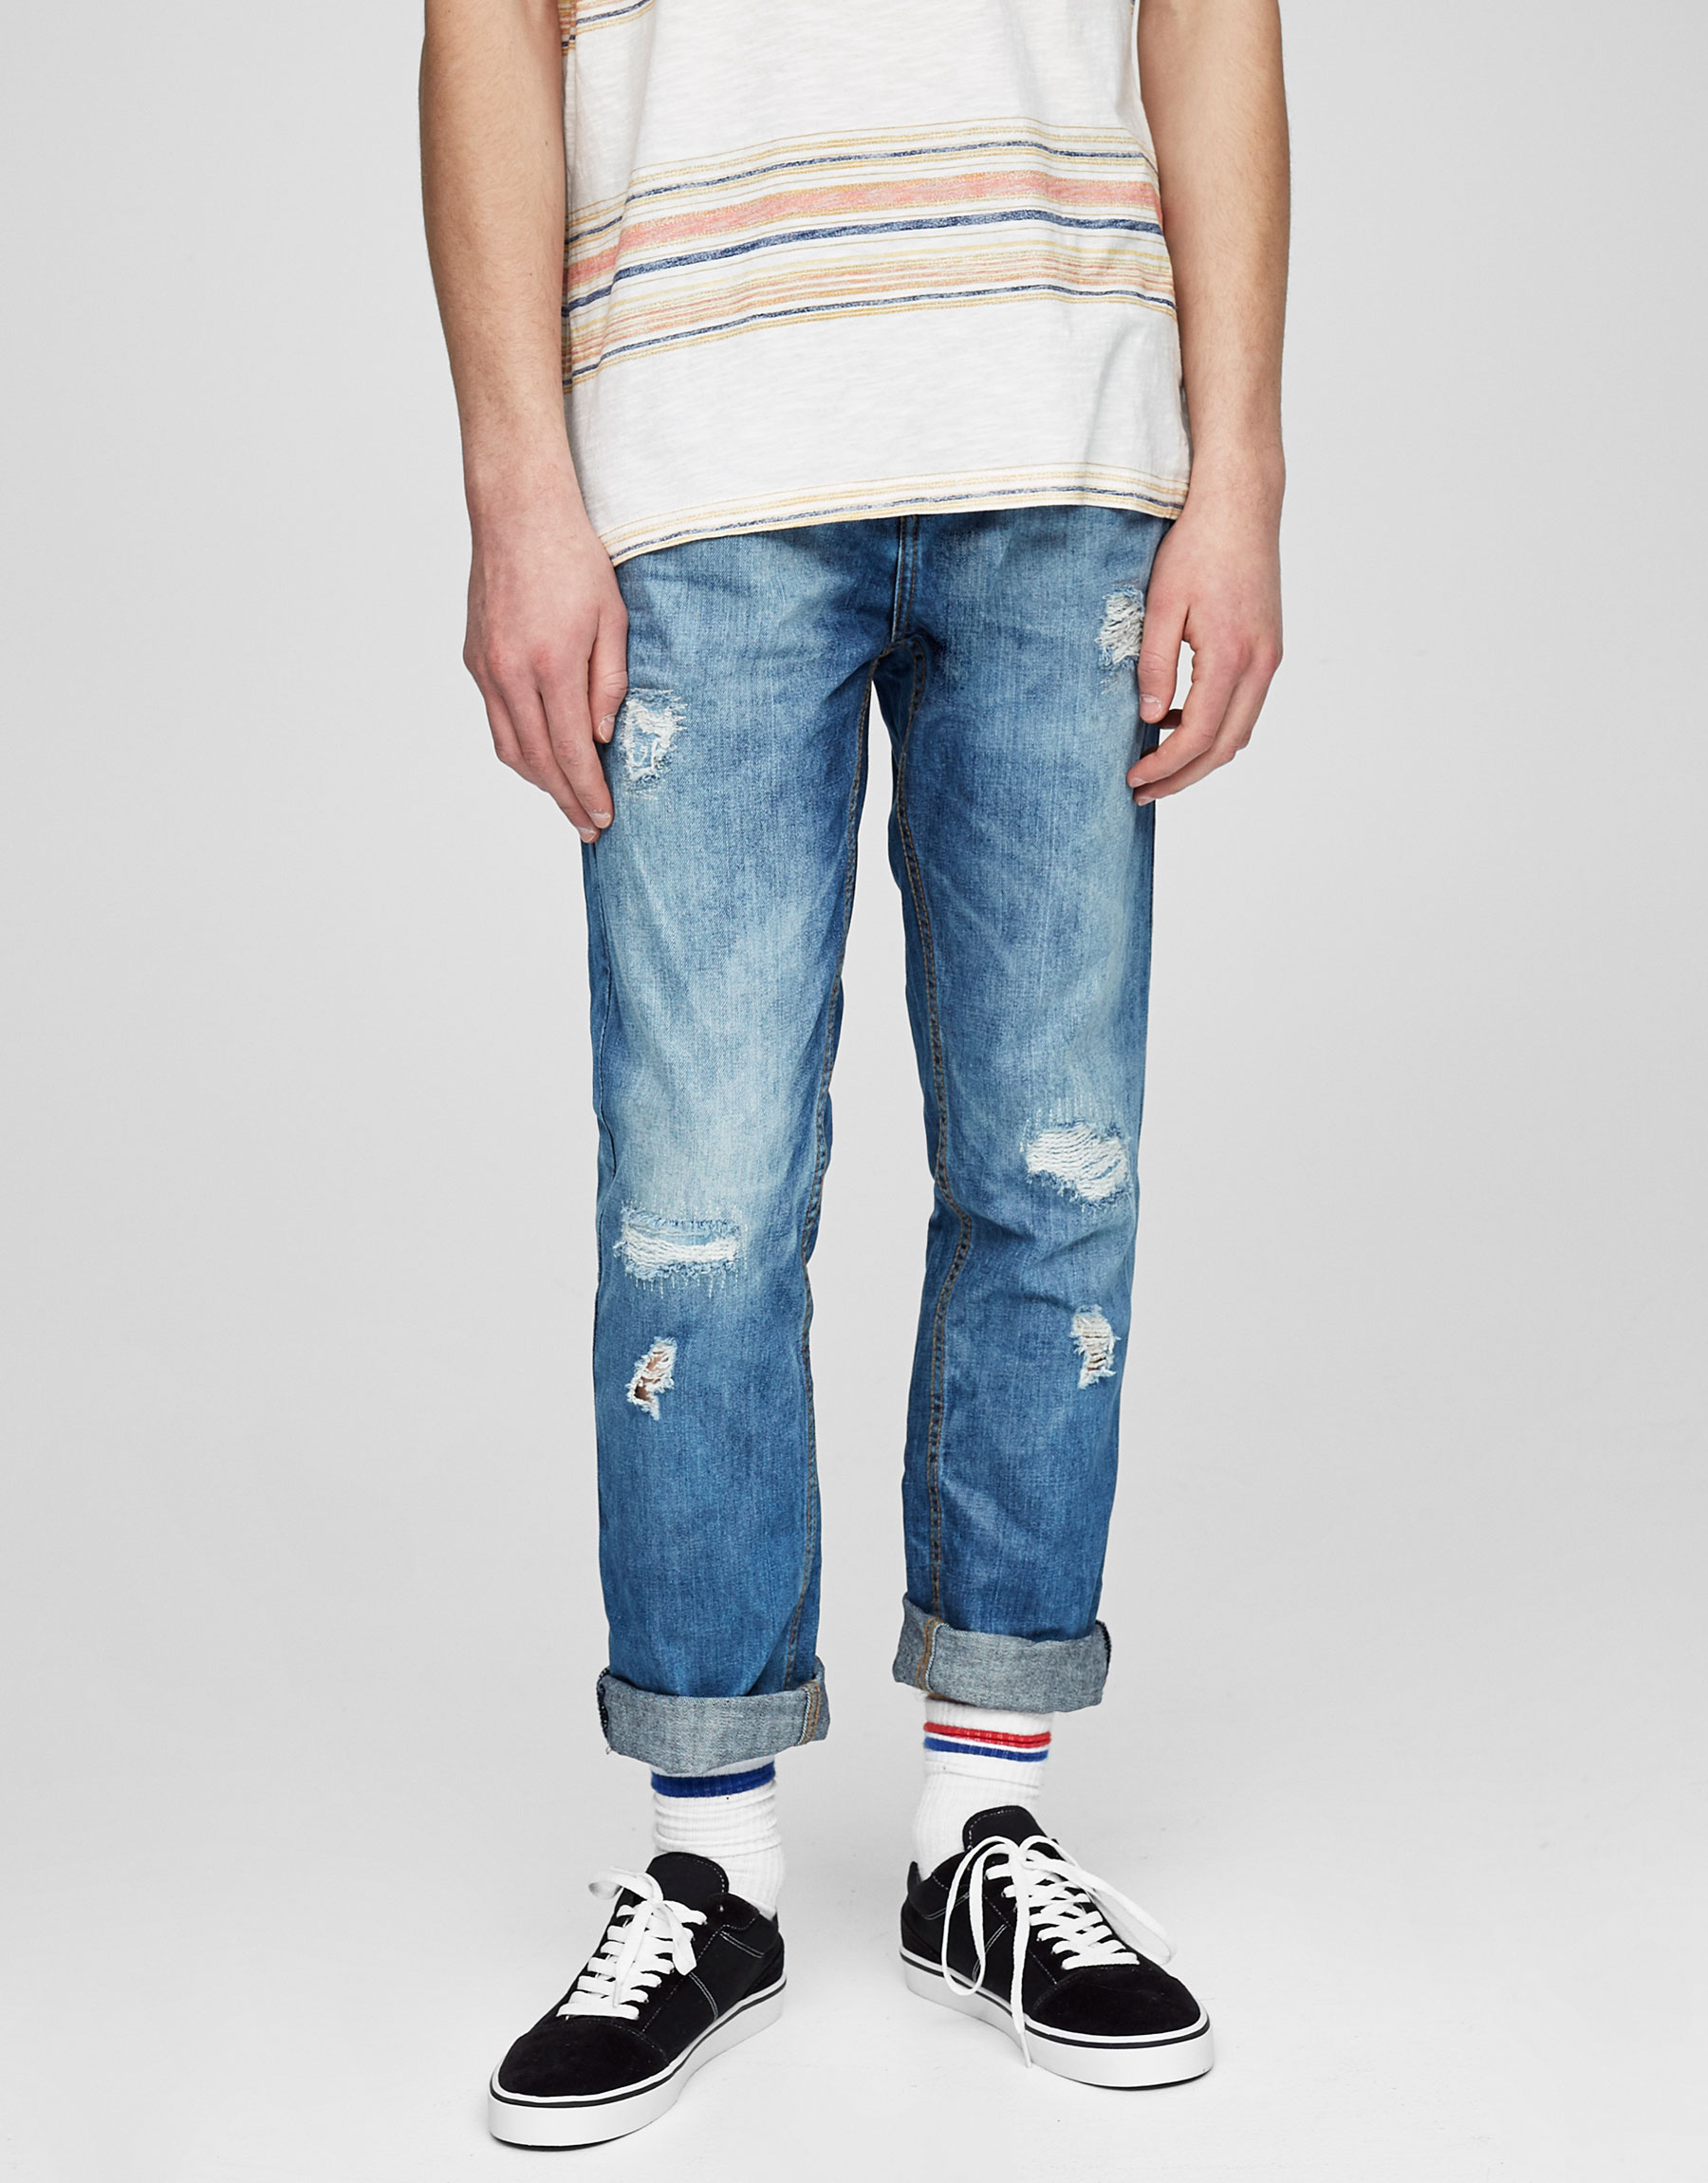 Jeans regular fit azul con rotos